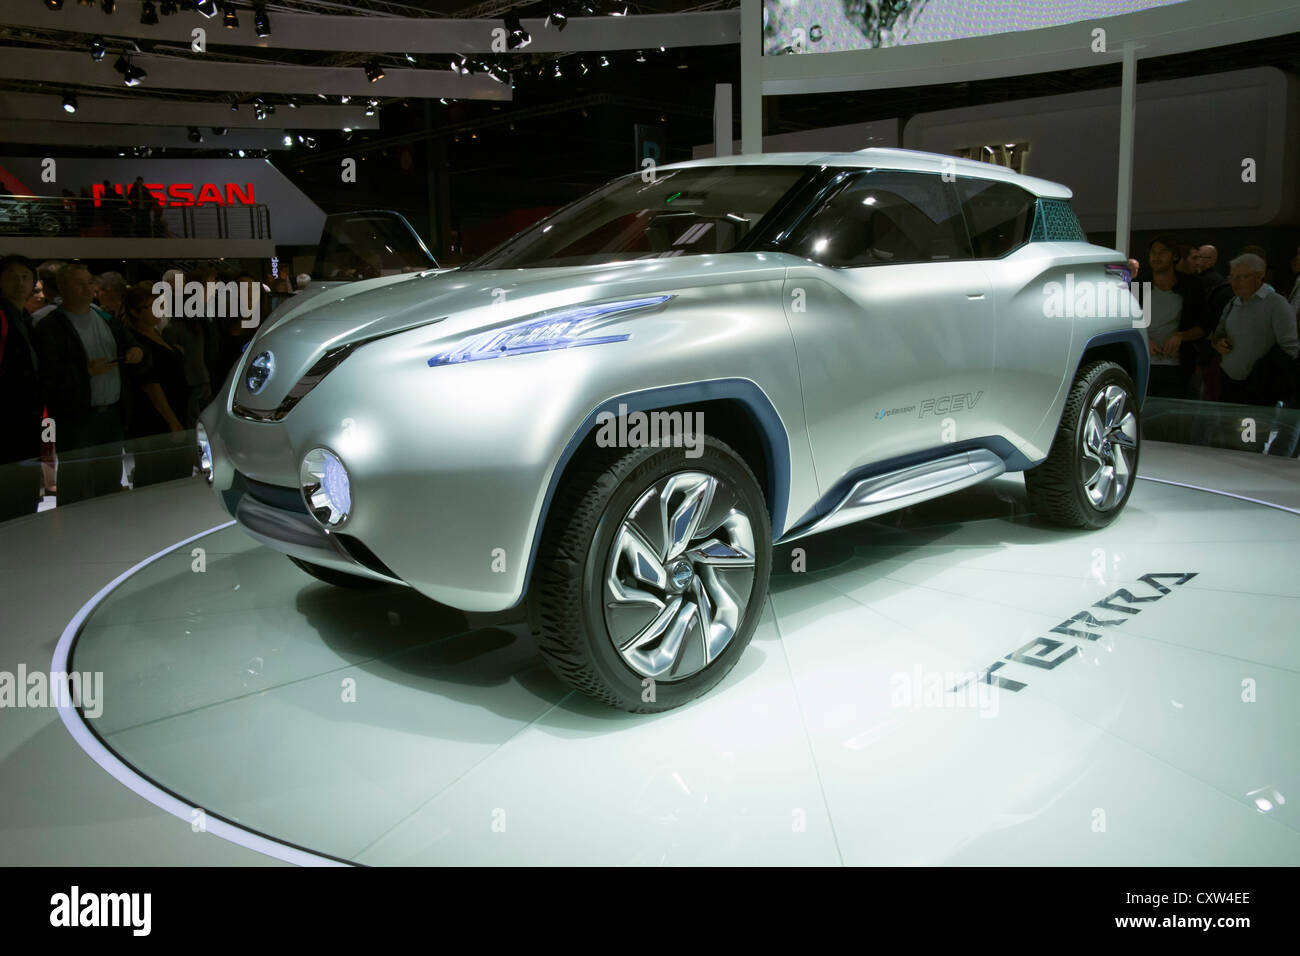 Nissan Terra fuel-cell powered concept car at Paris Motor Show 2012 - Stock Image